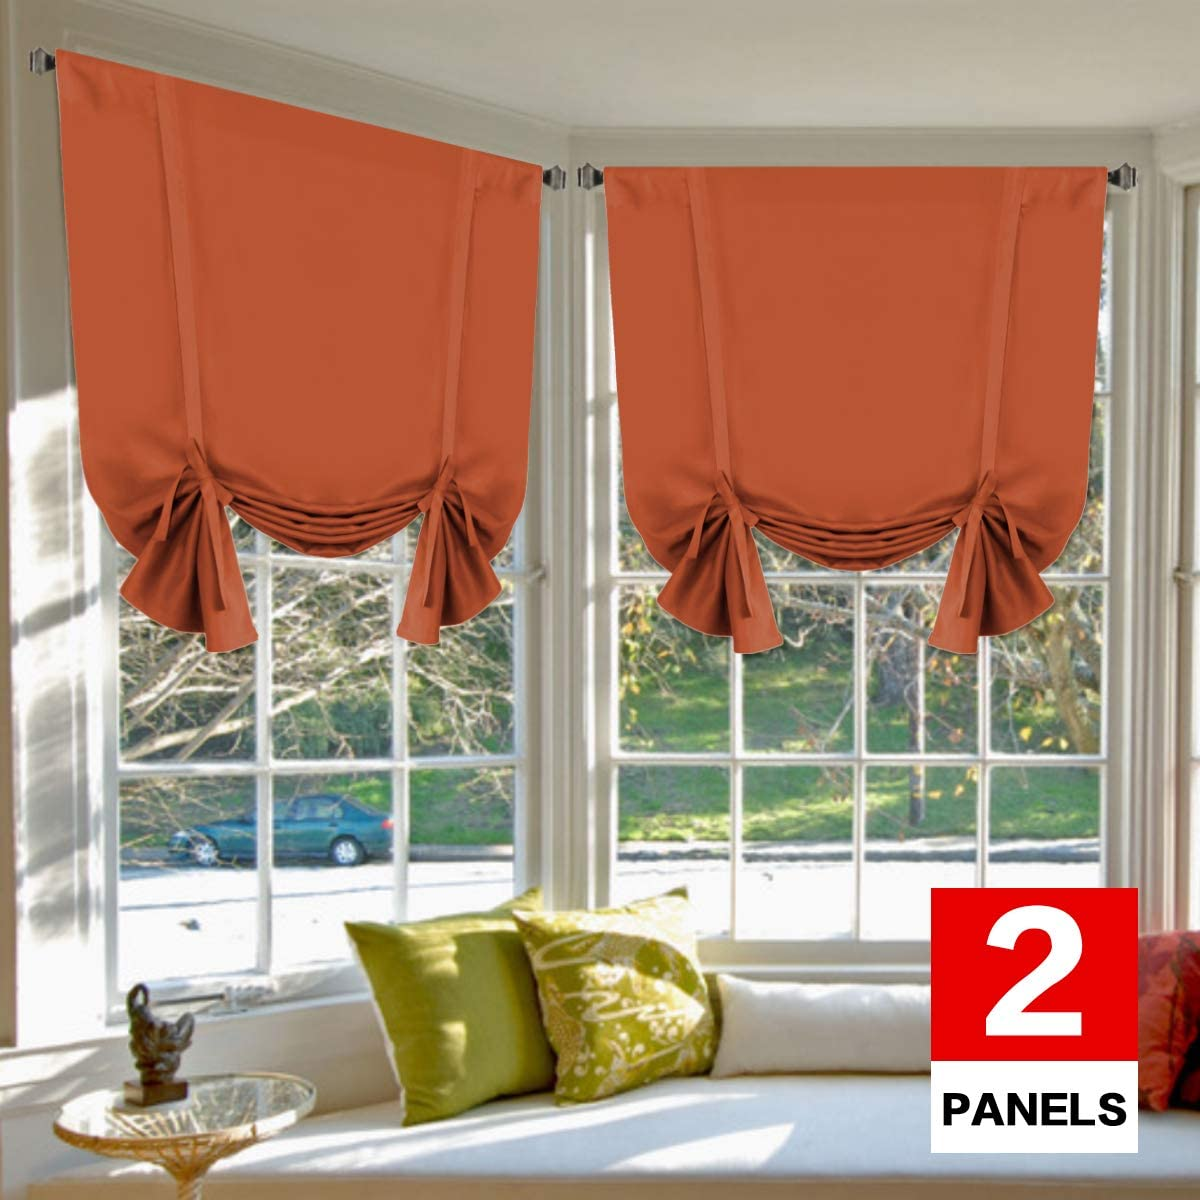 H.VERSAILTEX Blackout Energy Saving Thermal Insulated Tie Up Curtain for Small Window Home Fashion Window Treatment Solid Pattern Rod Pocket Panels for Kitchen, 2 Panels, Orange Ochre